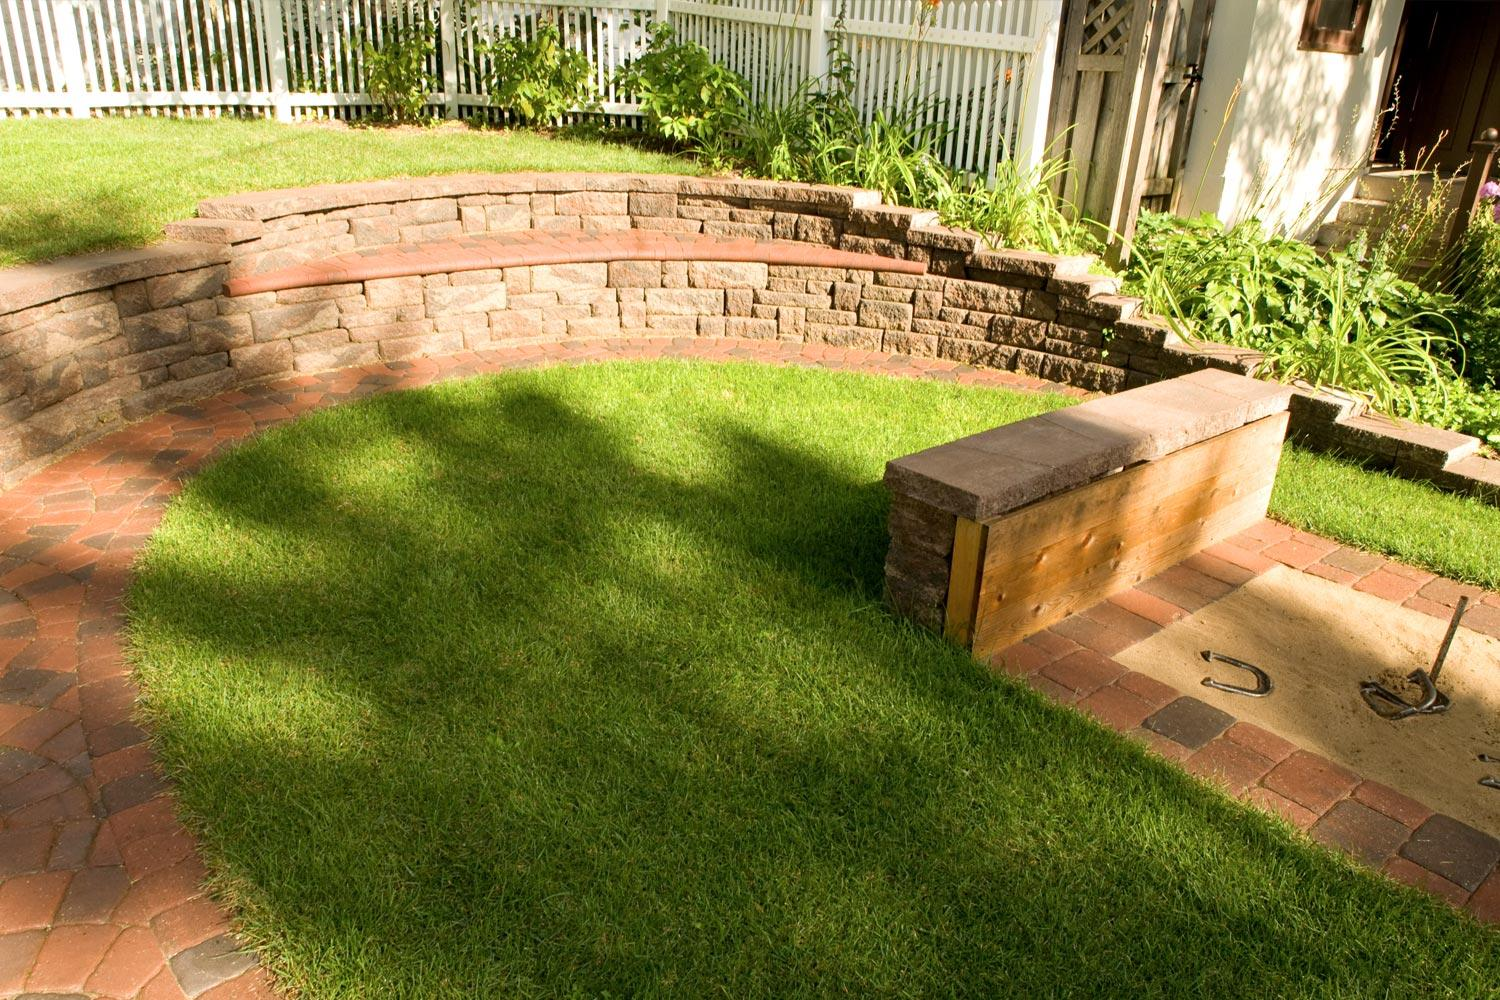 Modular block retaining wall with built-in seat bench.